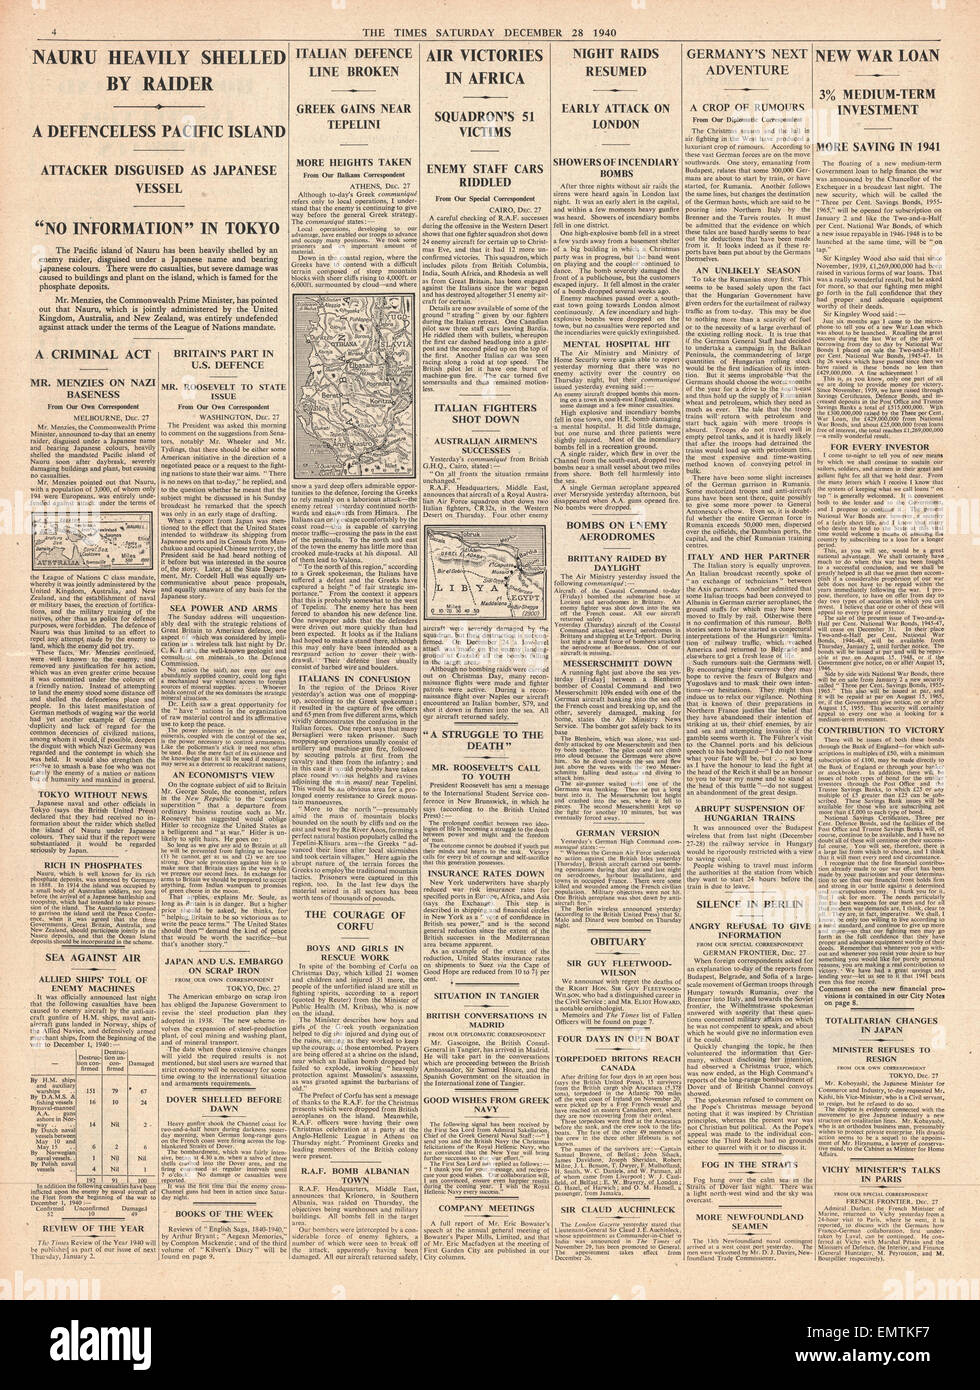 1940 page 4 The Times Island of Nauru shelled - Stock Image